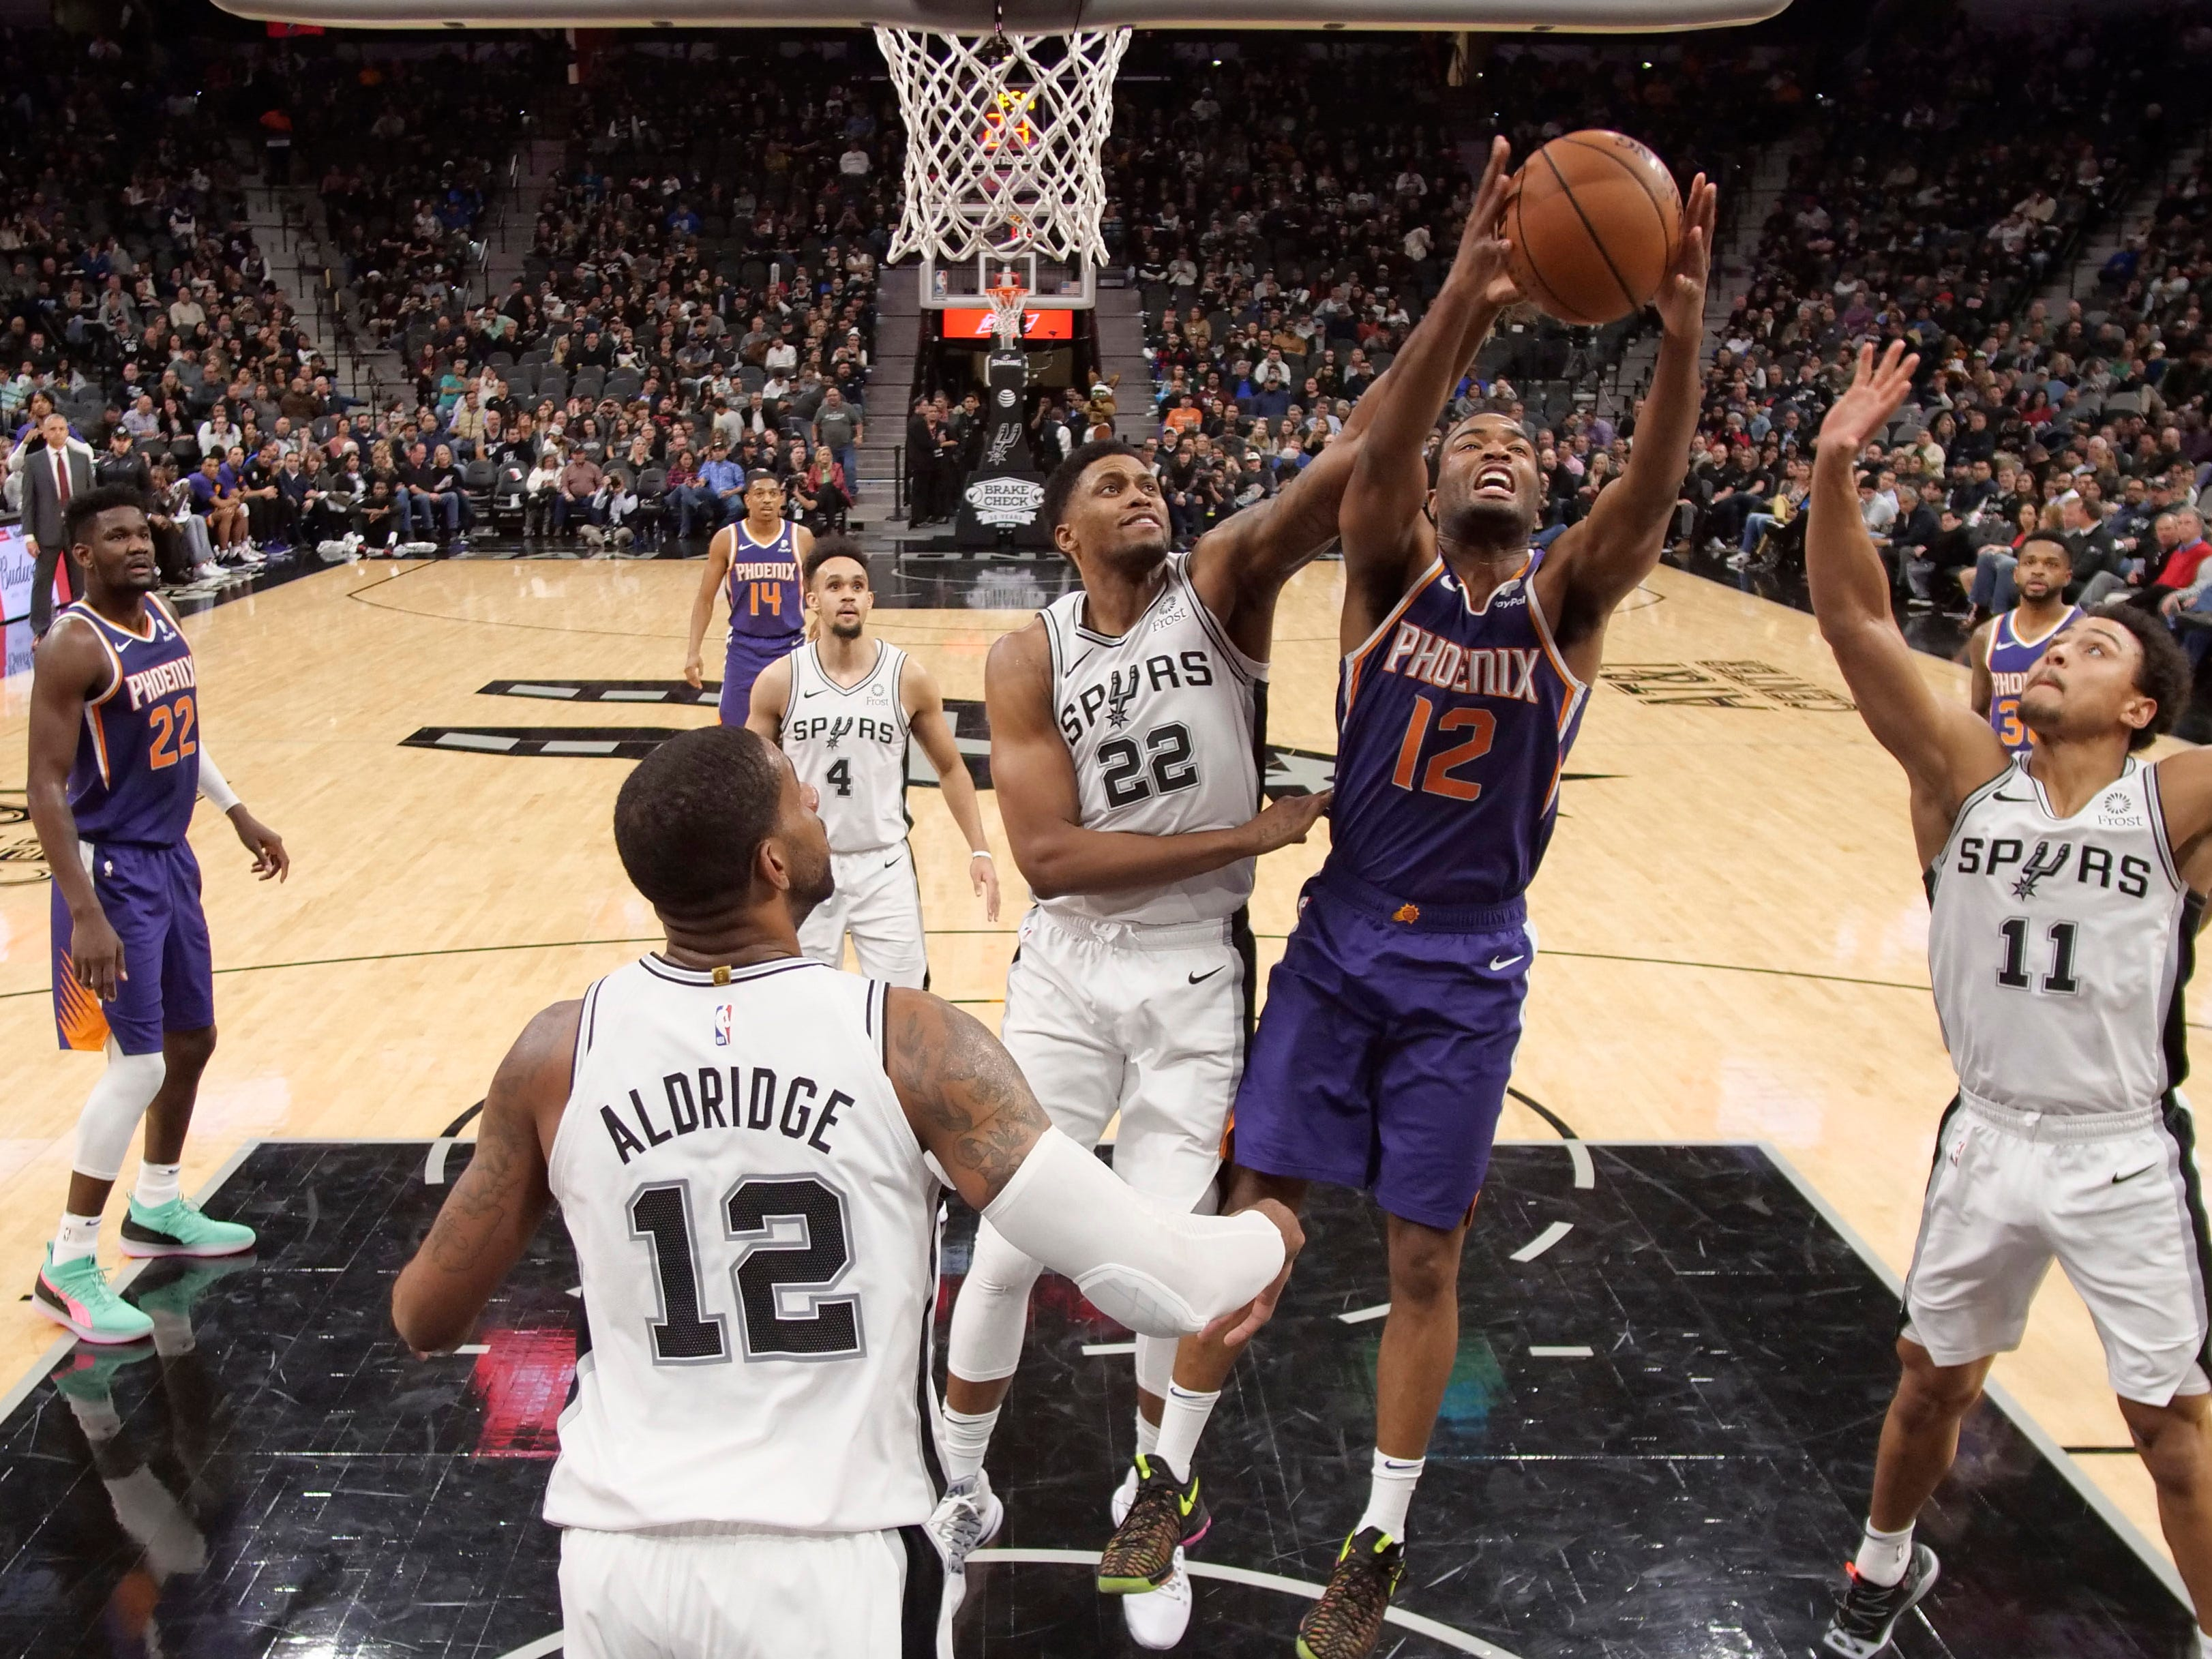 Dec 11, 2018; San Antonio, TX, USA; San Antonio Spurs small forward Rudy Gay (22) and Phoenix Suns small forward T.J. Warren (12) battle for a rebound during the second half at AT&T Center. Mandatory Credit: Soobum Im-USA TODAY Sports